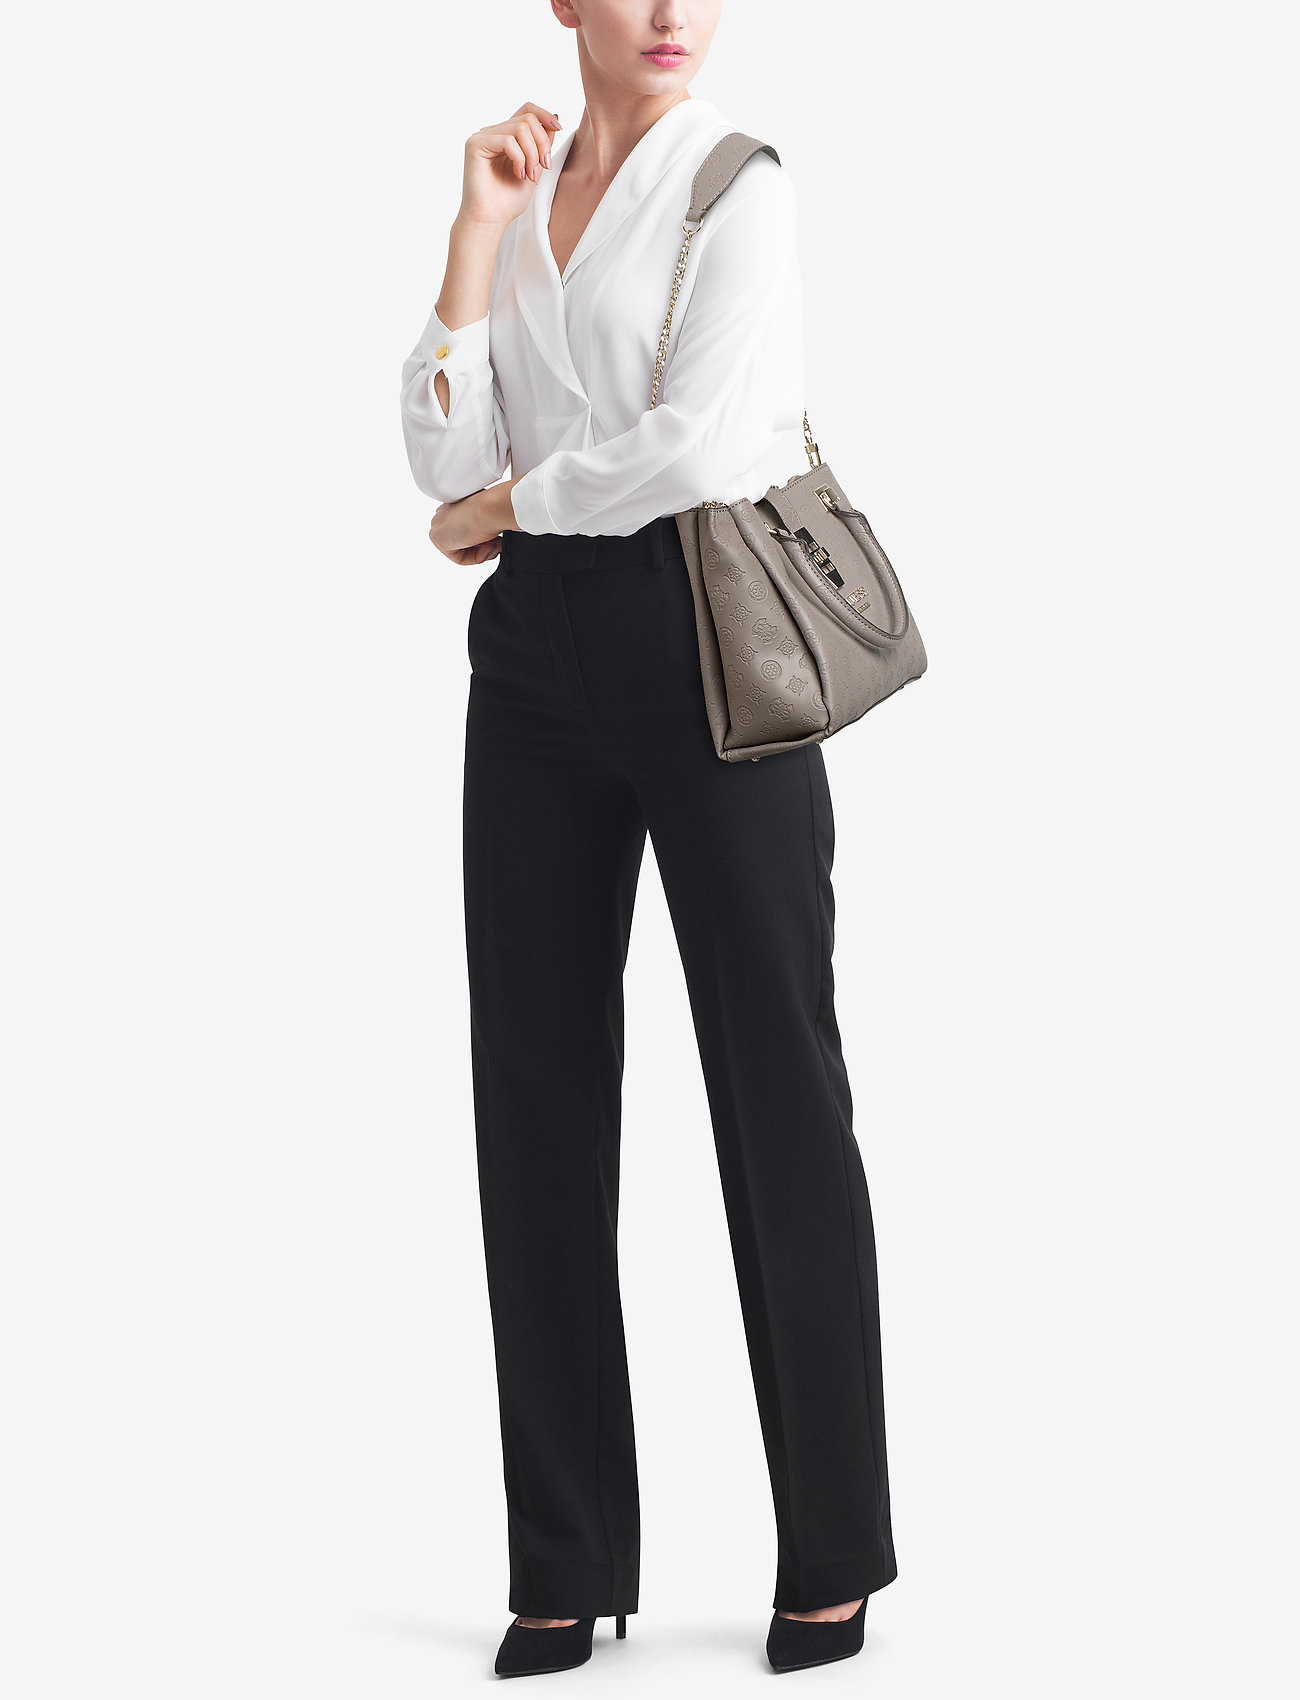 GUESS PEONY CLASSIC GRLFRND CARRYALL - TAUPE